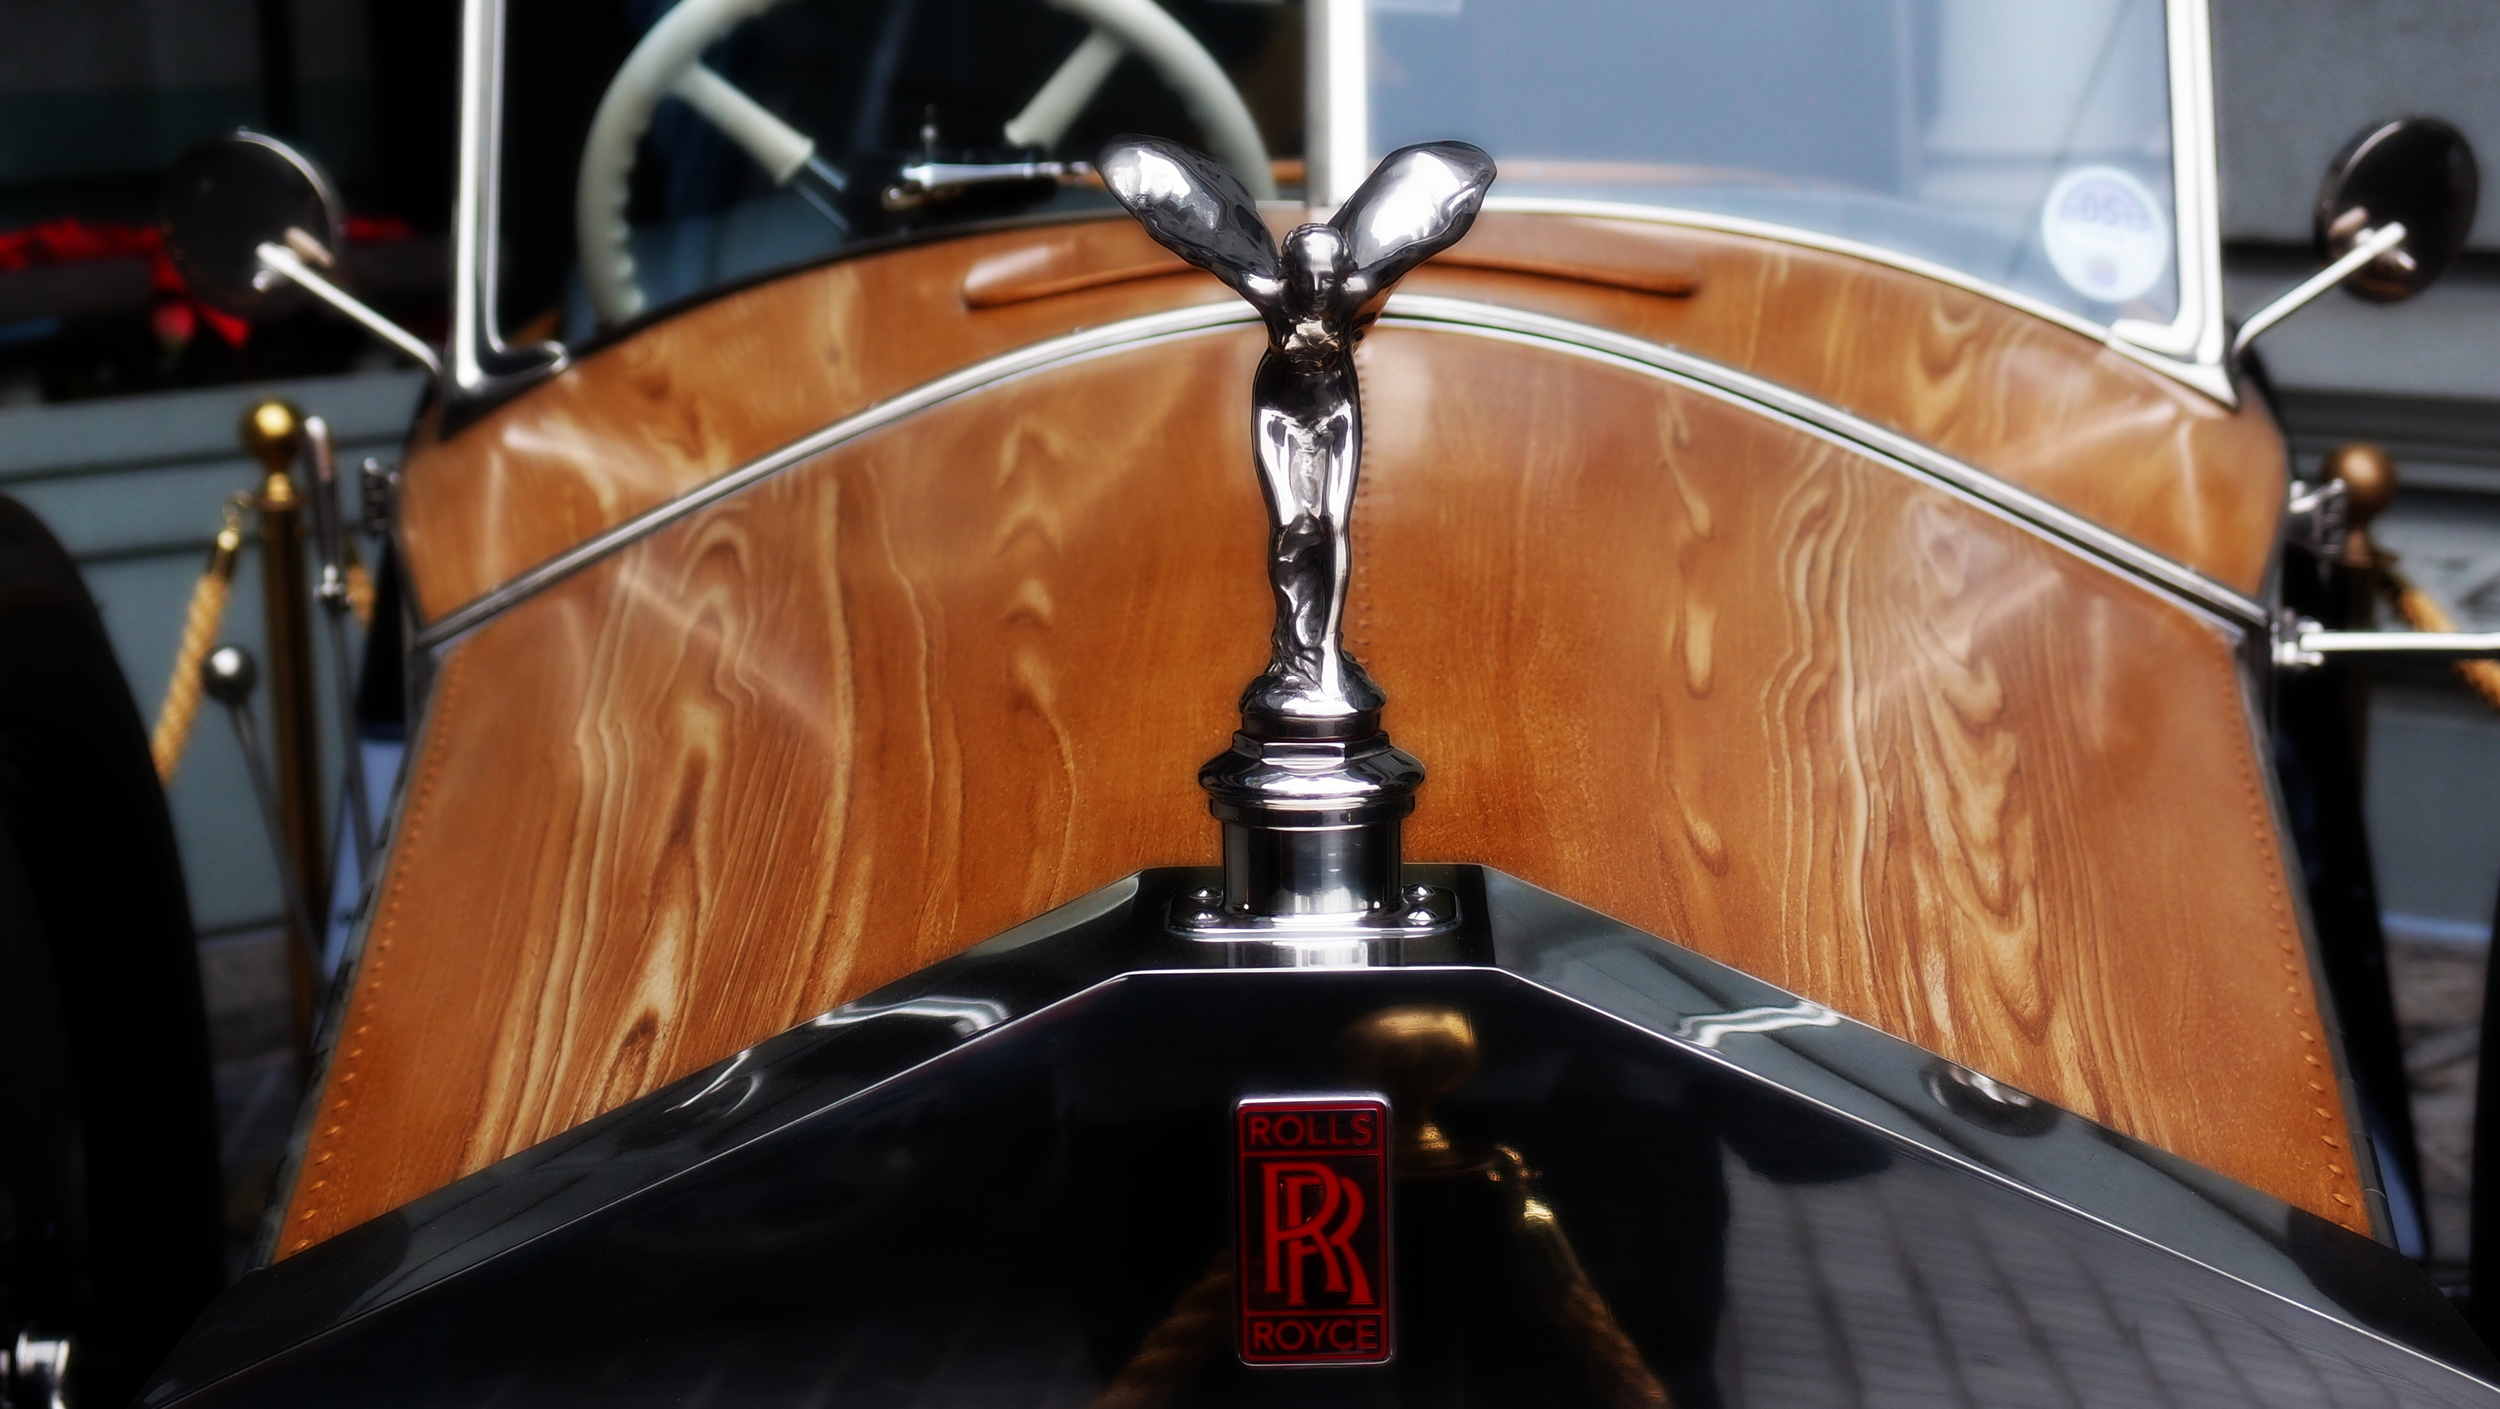 A very old and magnificent Rolls Royce